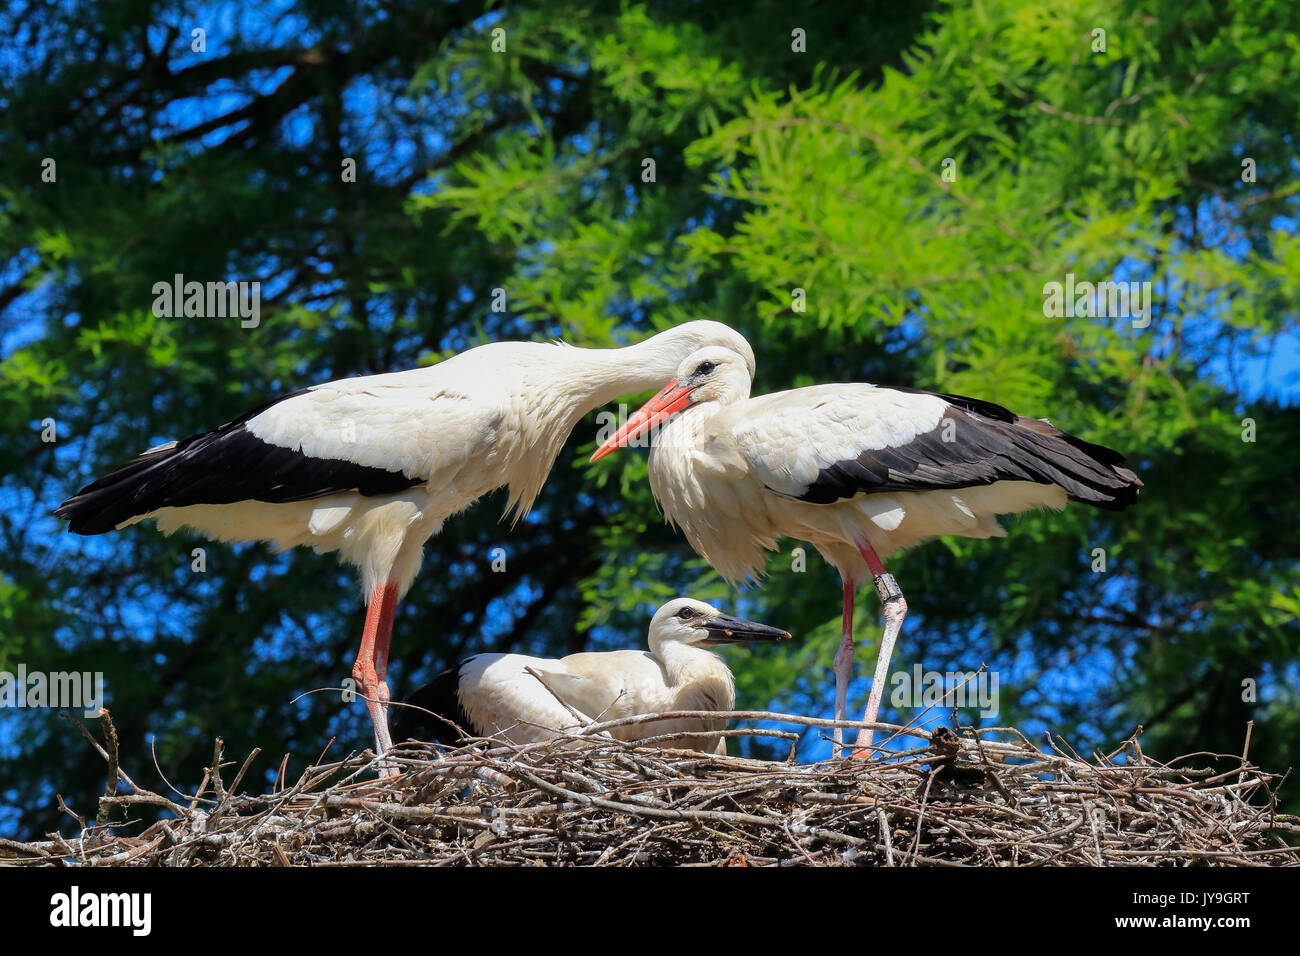 Adult  white storks (Ciconia ciconia) with chick on nest, Basel, Switzerland. Stock Photo